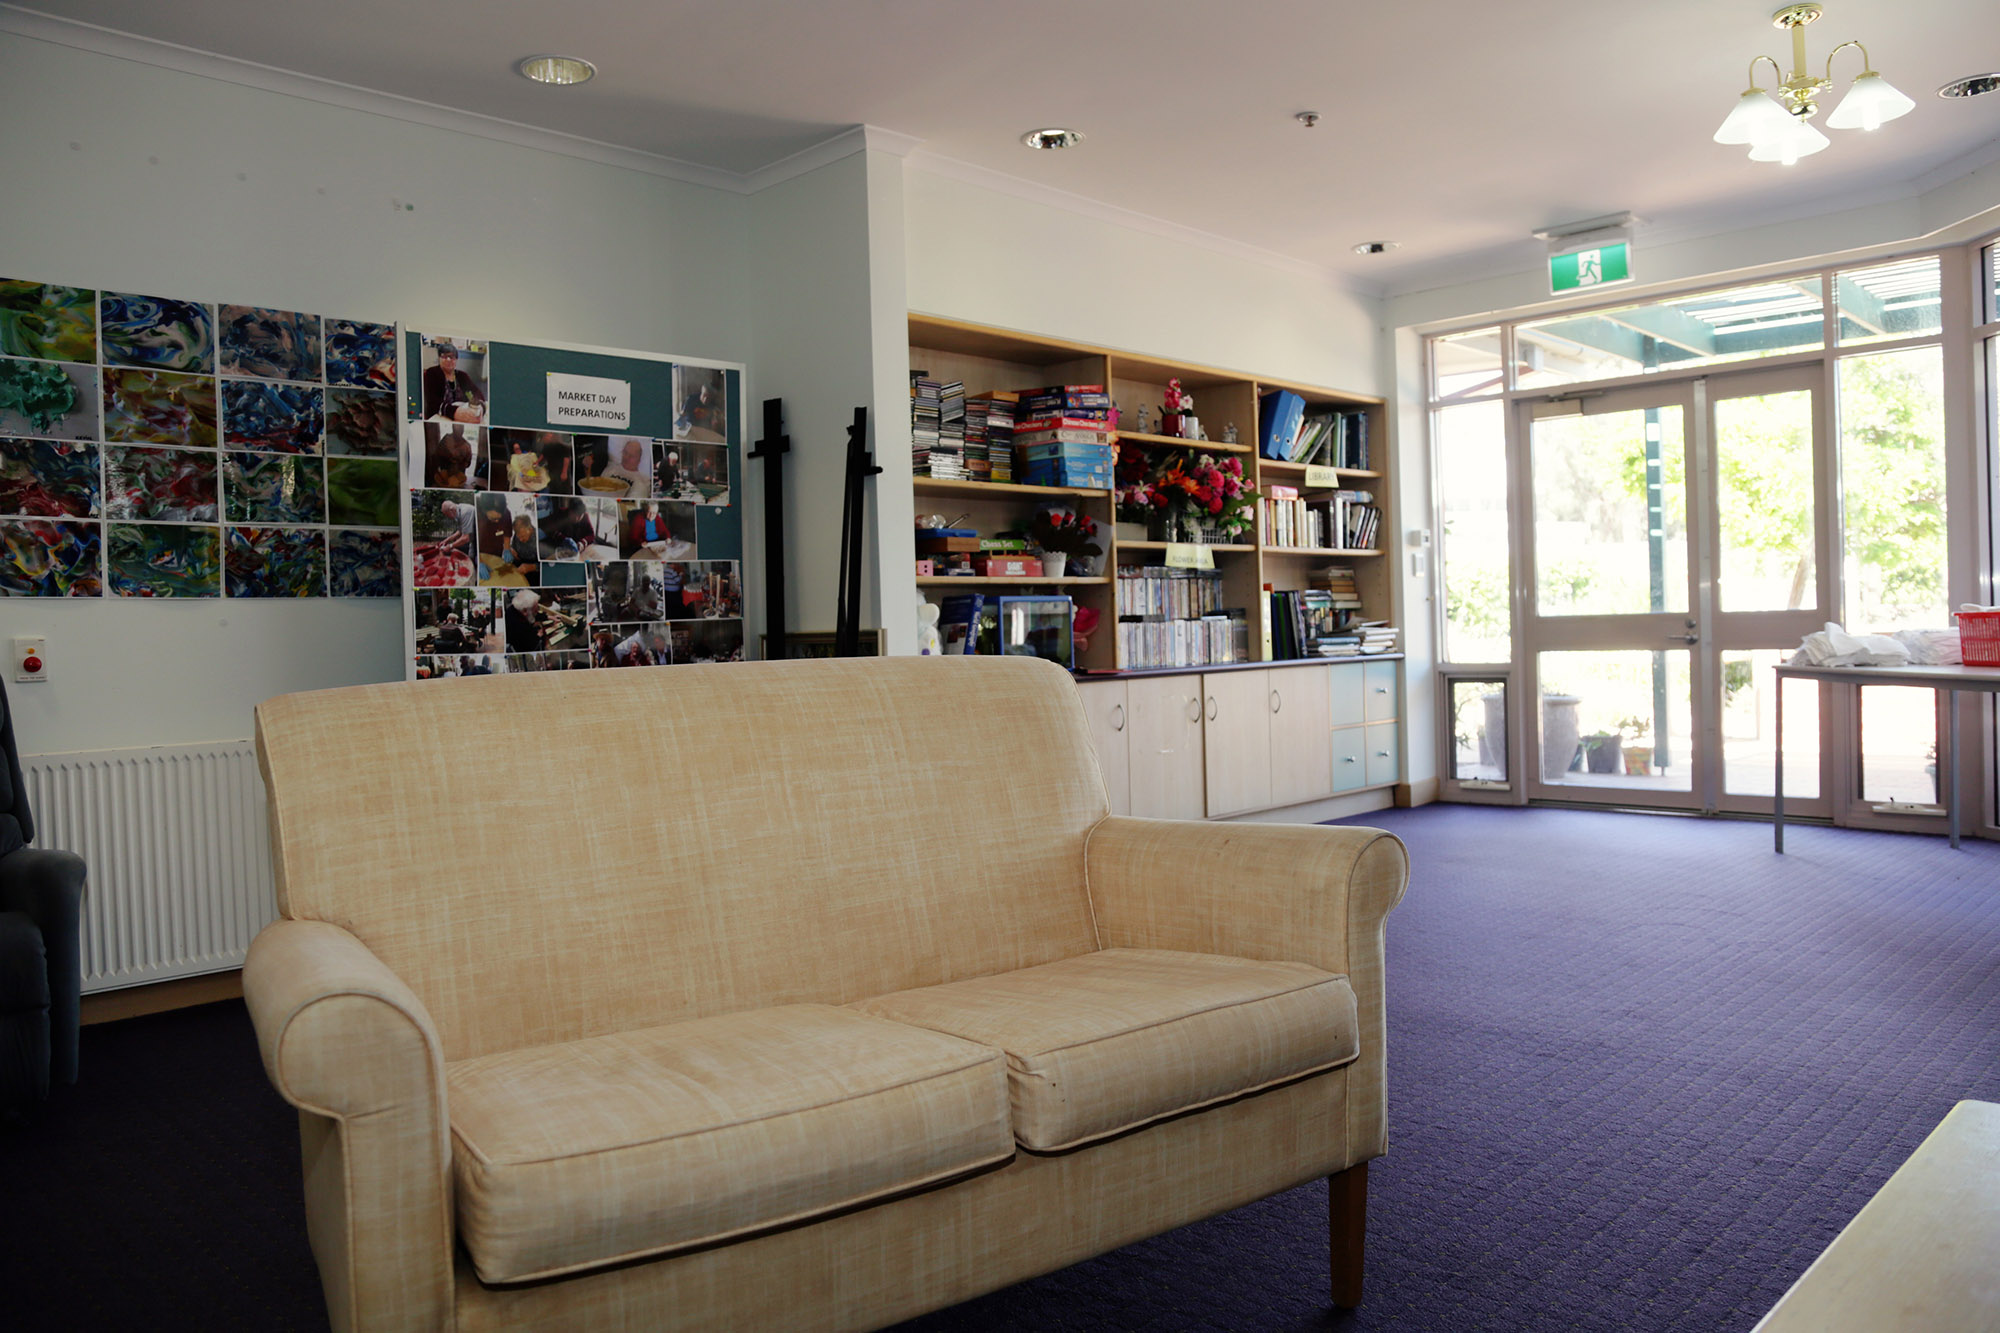 Our Services Macpherson Smith Residential Care Communal Area